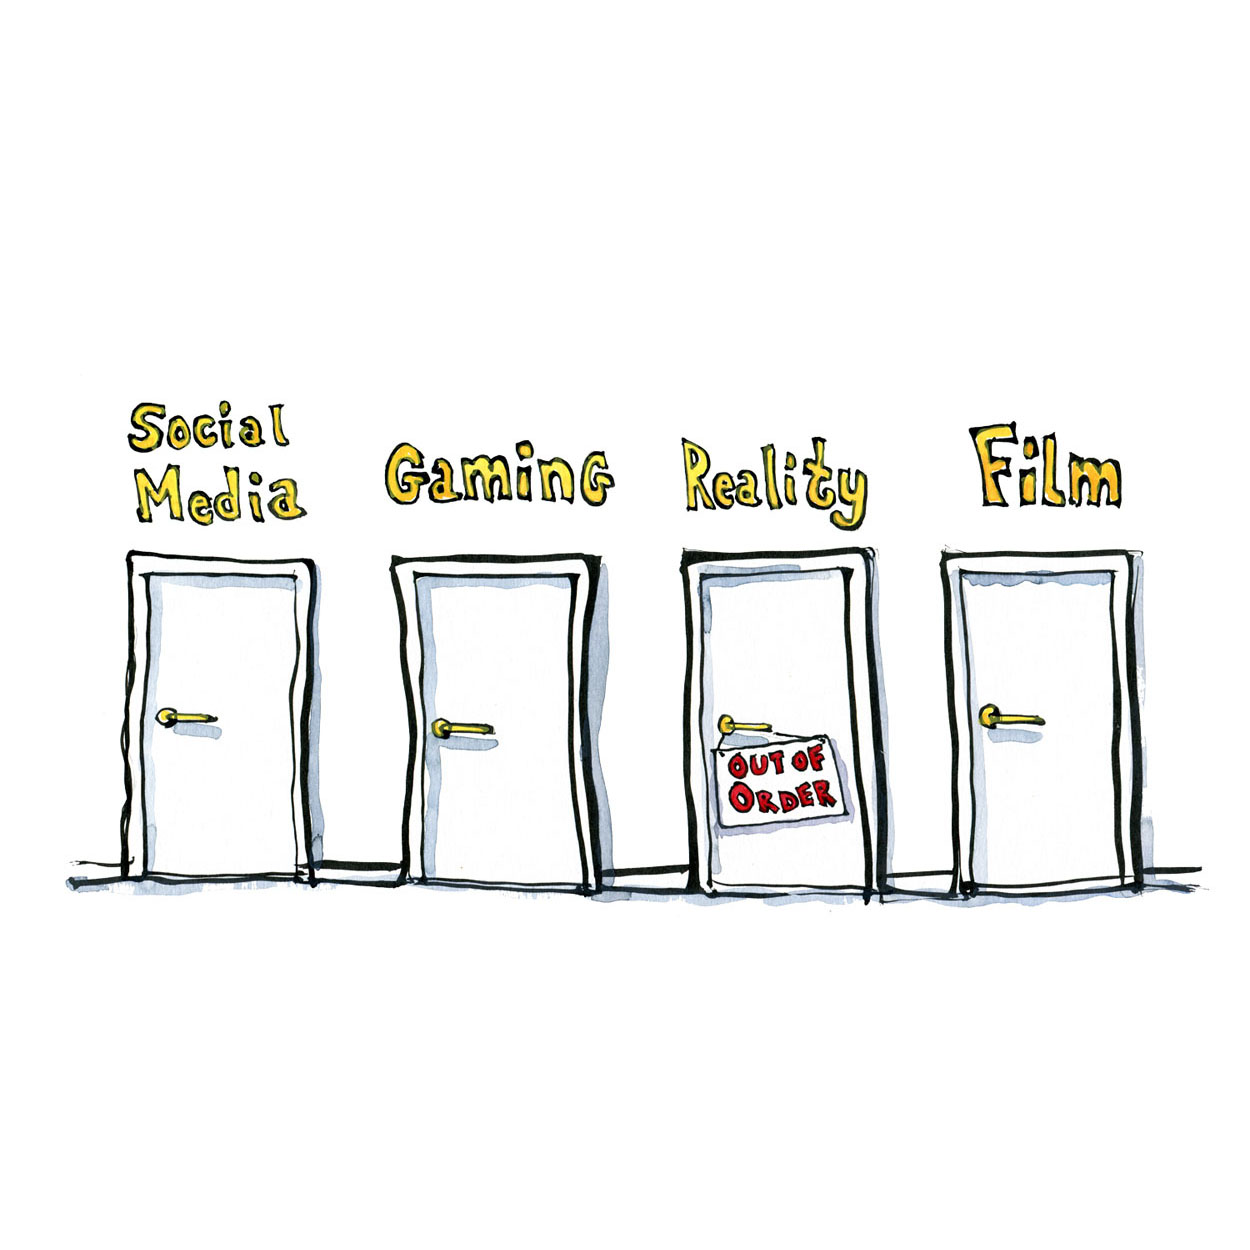 Drawing of four doors. Social media, gaming, reality and film with reality out of order. Illustration by Frits Ahlefeldt